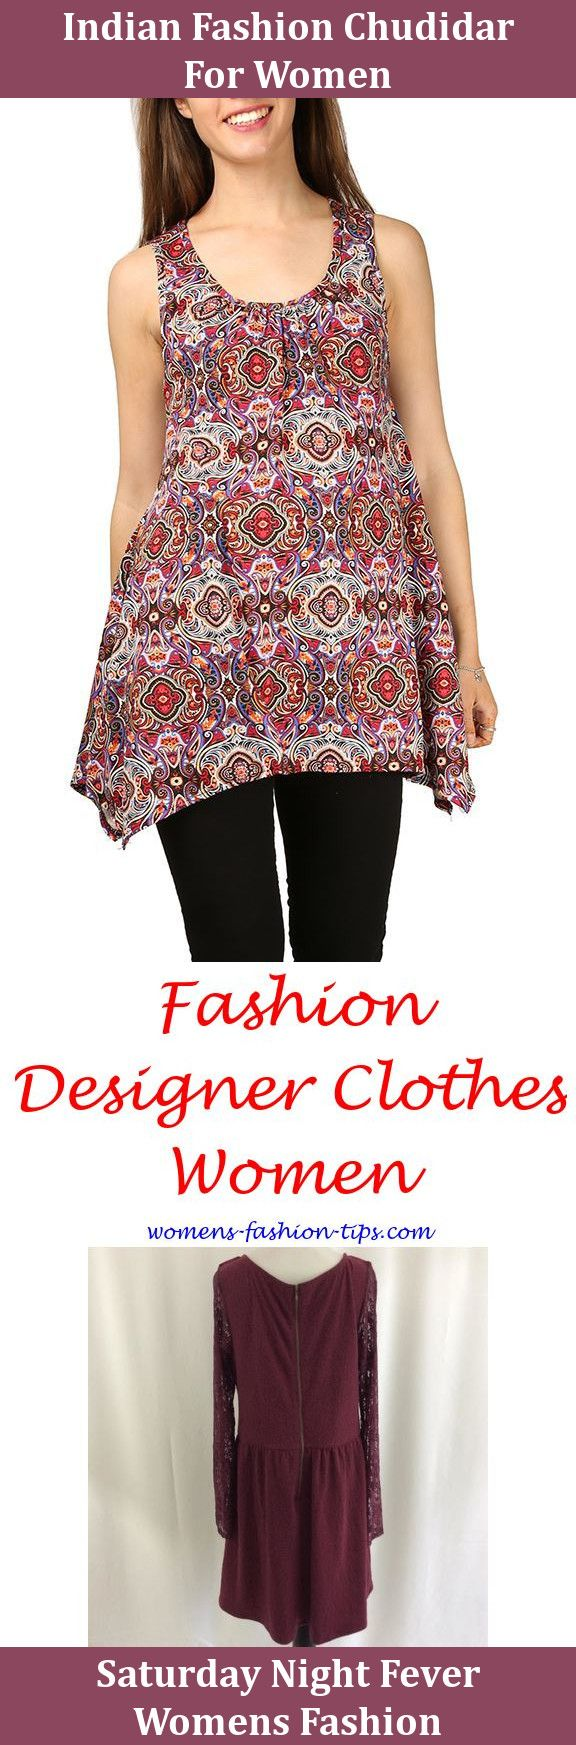 best clothing sales images on pinterest